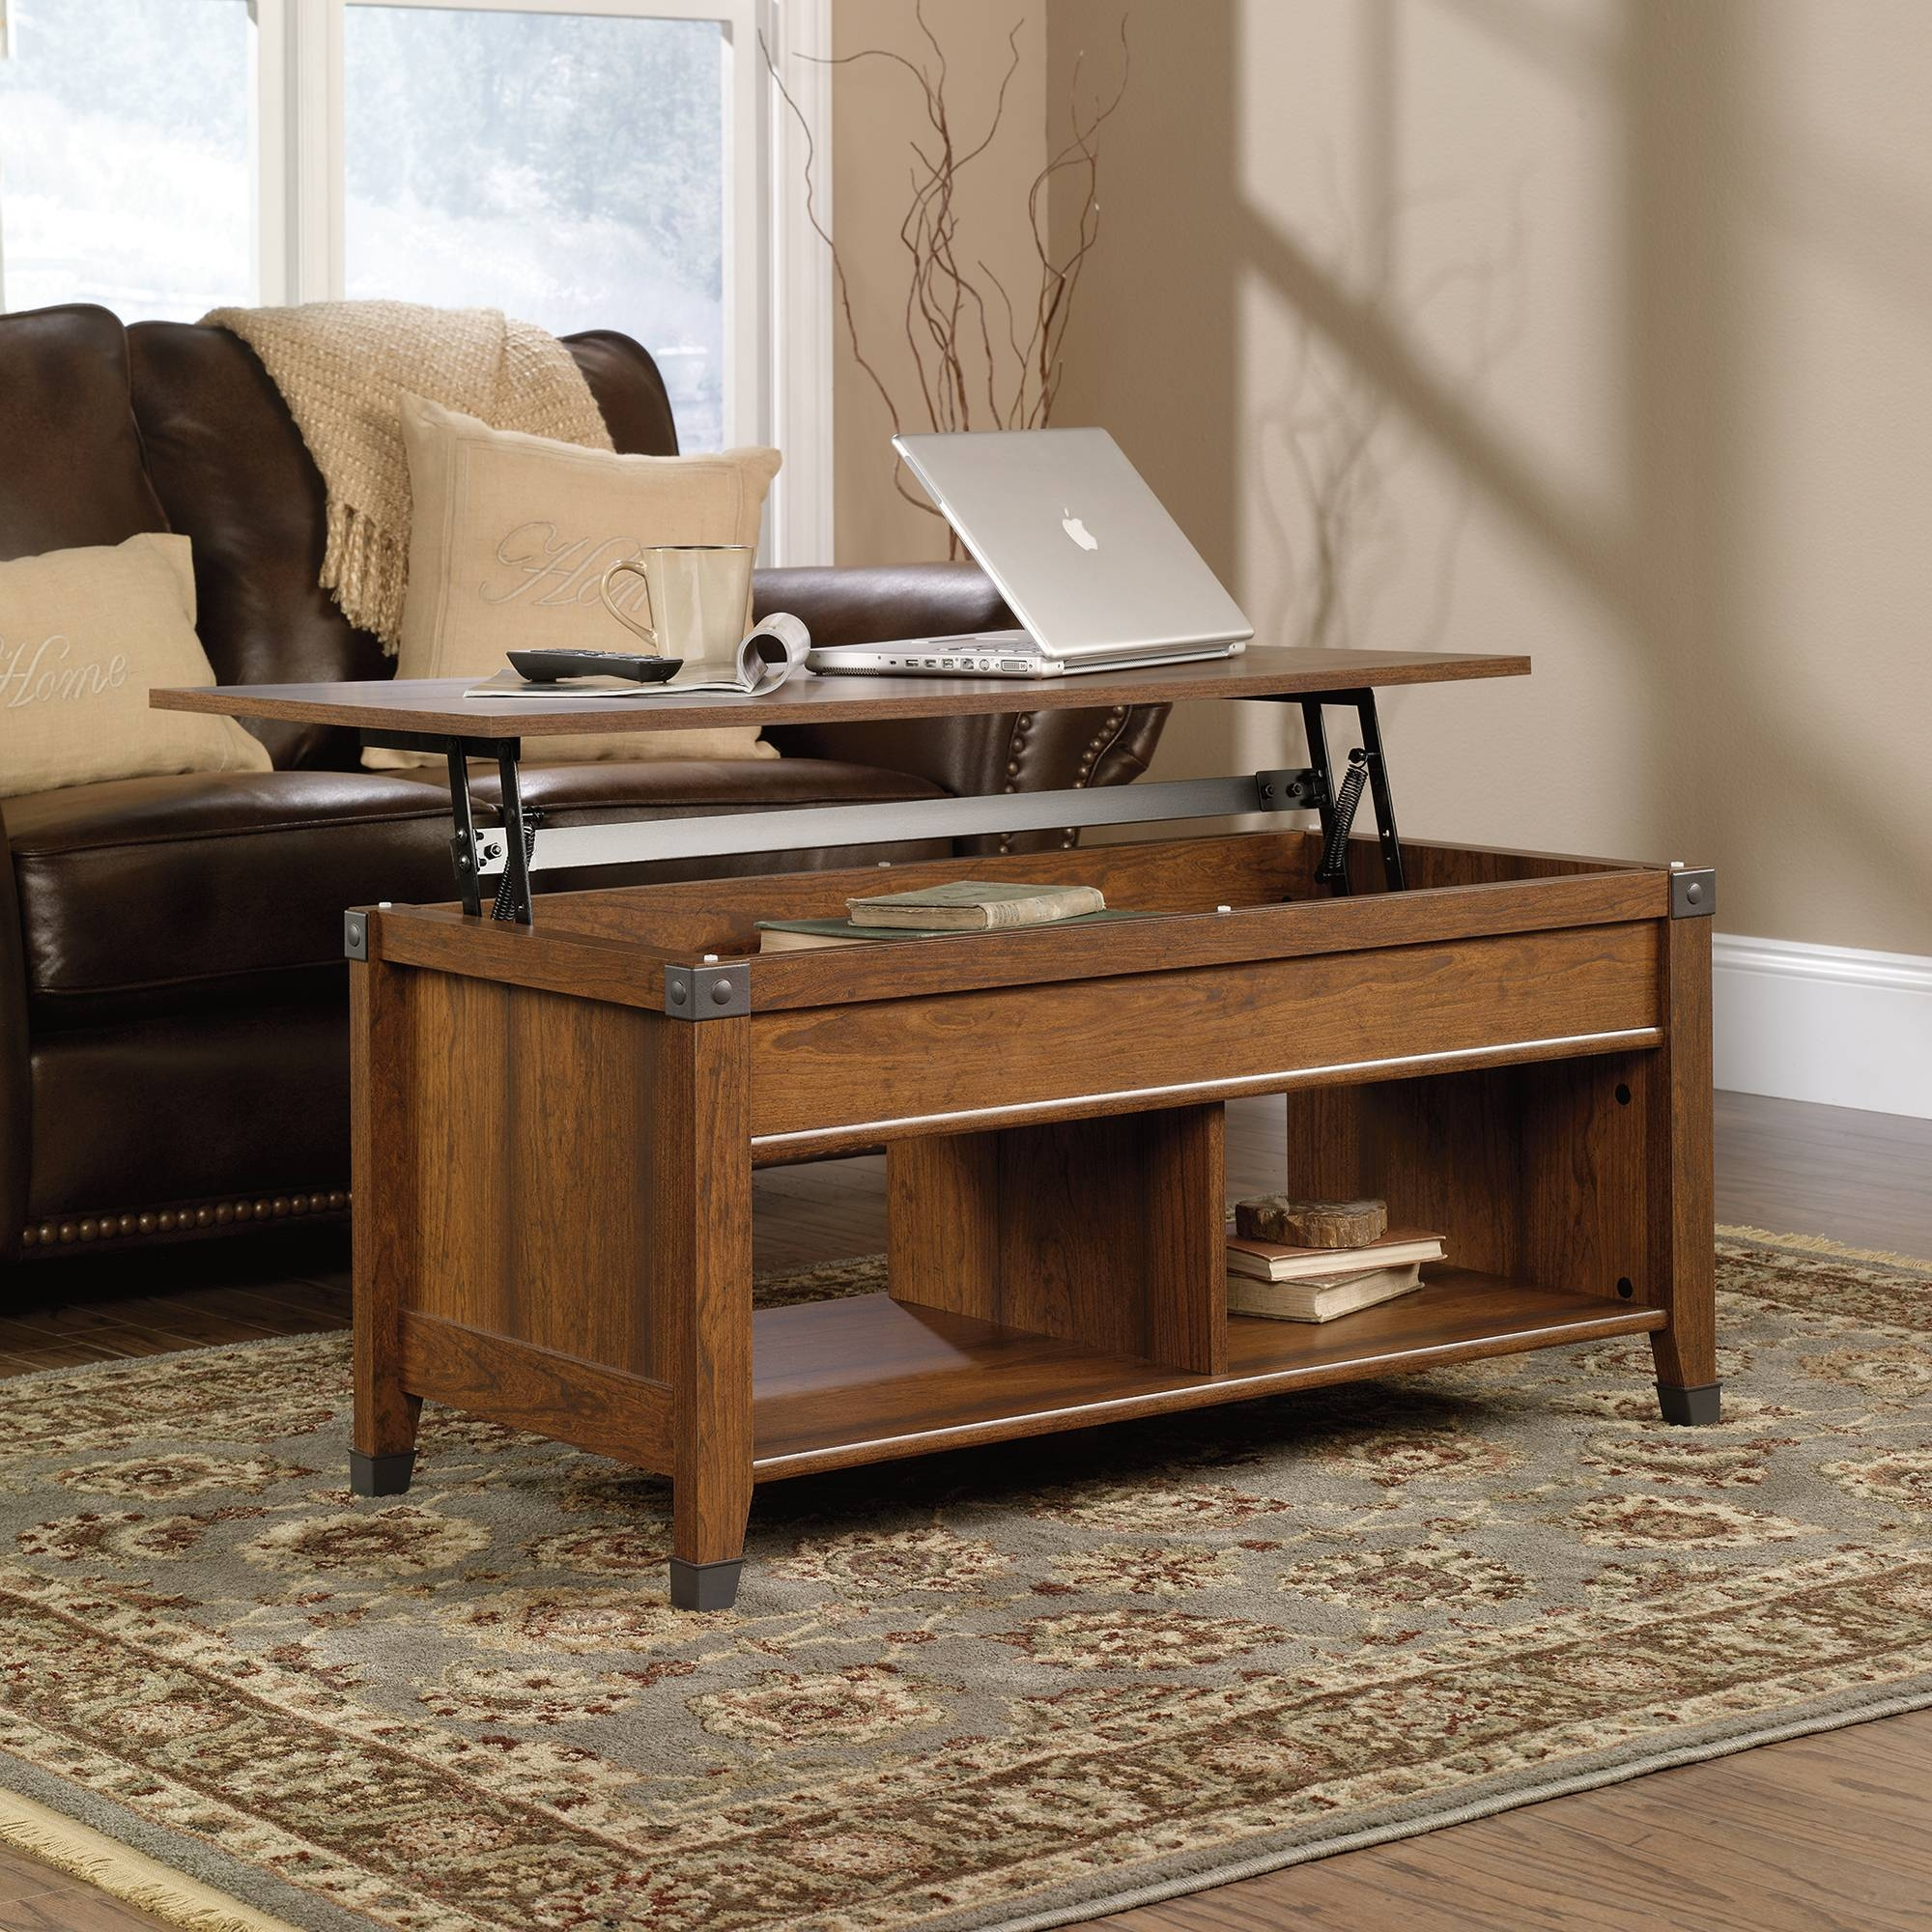 Carson Forge | Lift-Top Coffee Table | 414444 | Sauder throughout Top Lift Coffee Tables (Image 6 of 30)